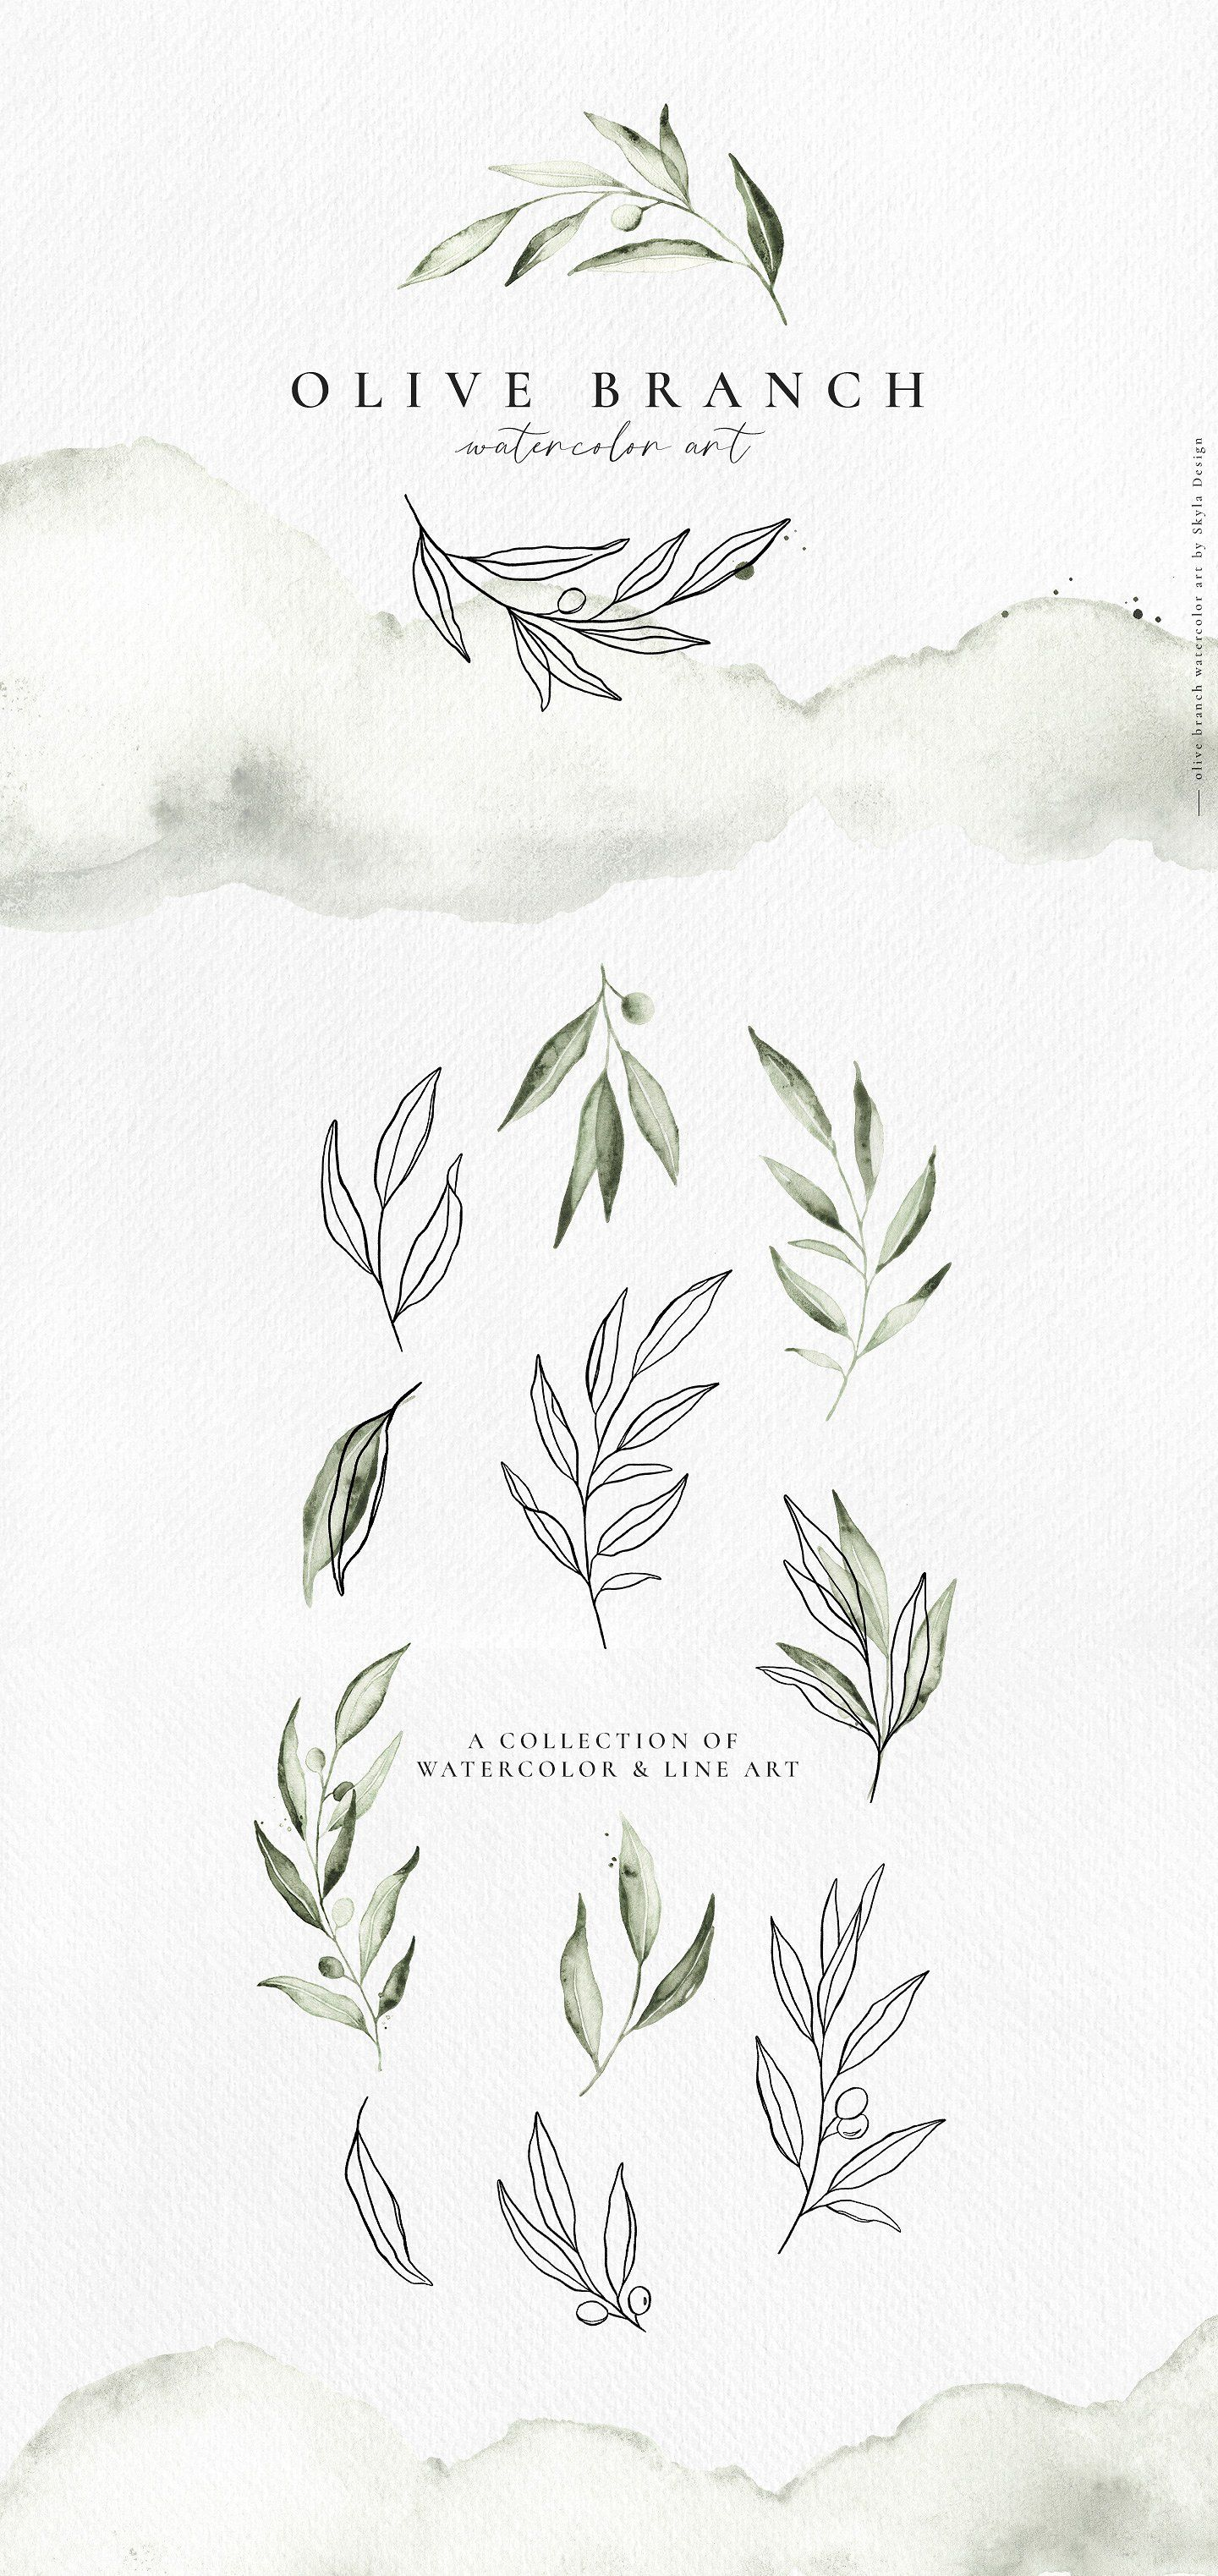 Ad: A beautiful collection of watercolor olive branches and line art. Combine the elements to create dreamy, delicate designs for weddings, mood boards, Instagram posts, magazines, & any other lovely projects. #sponsored $12